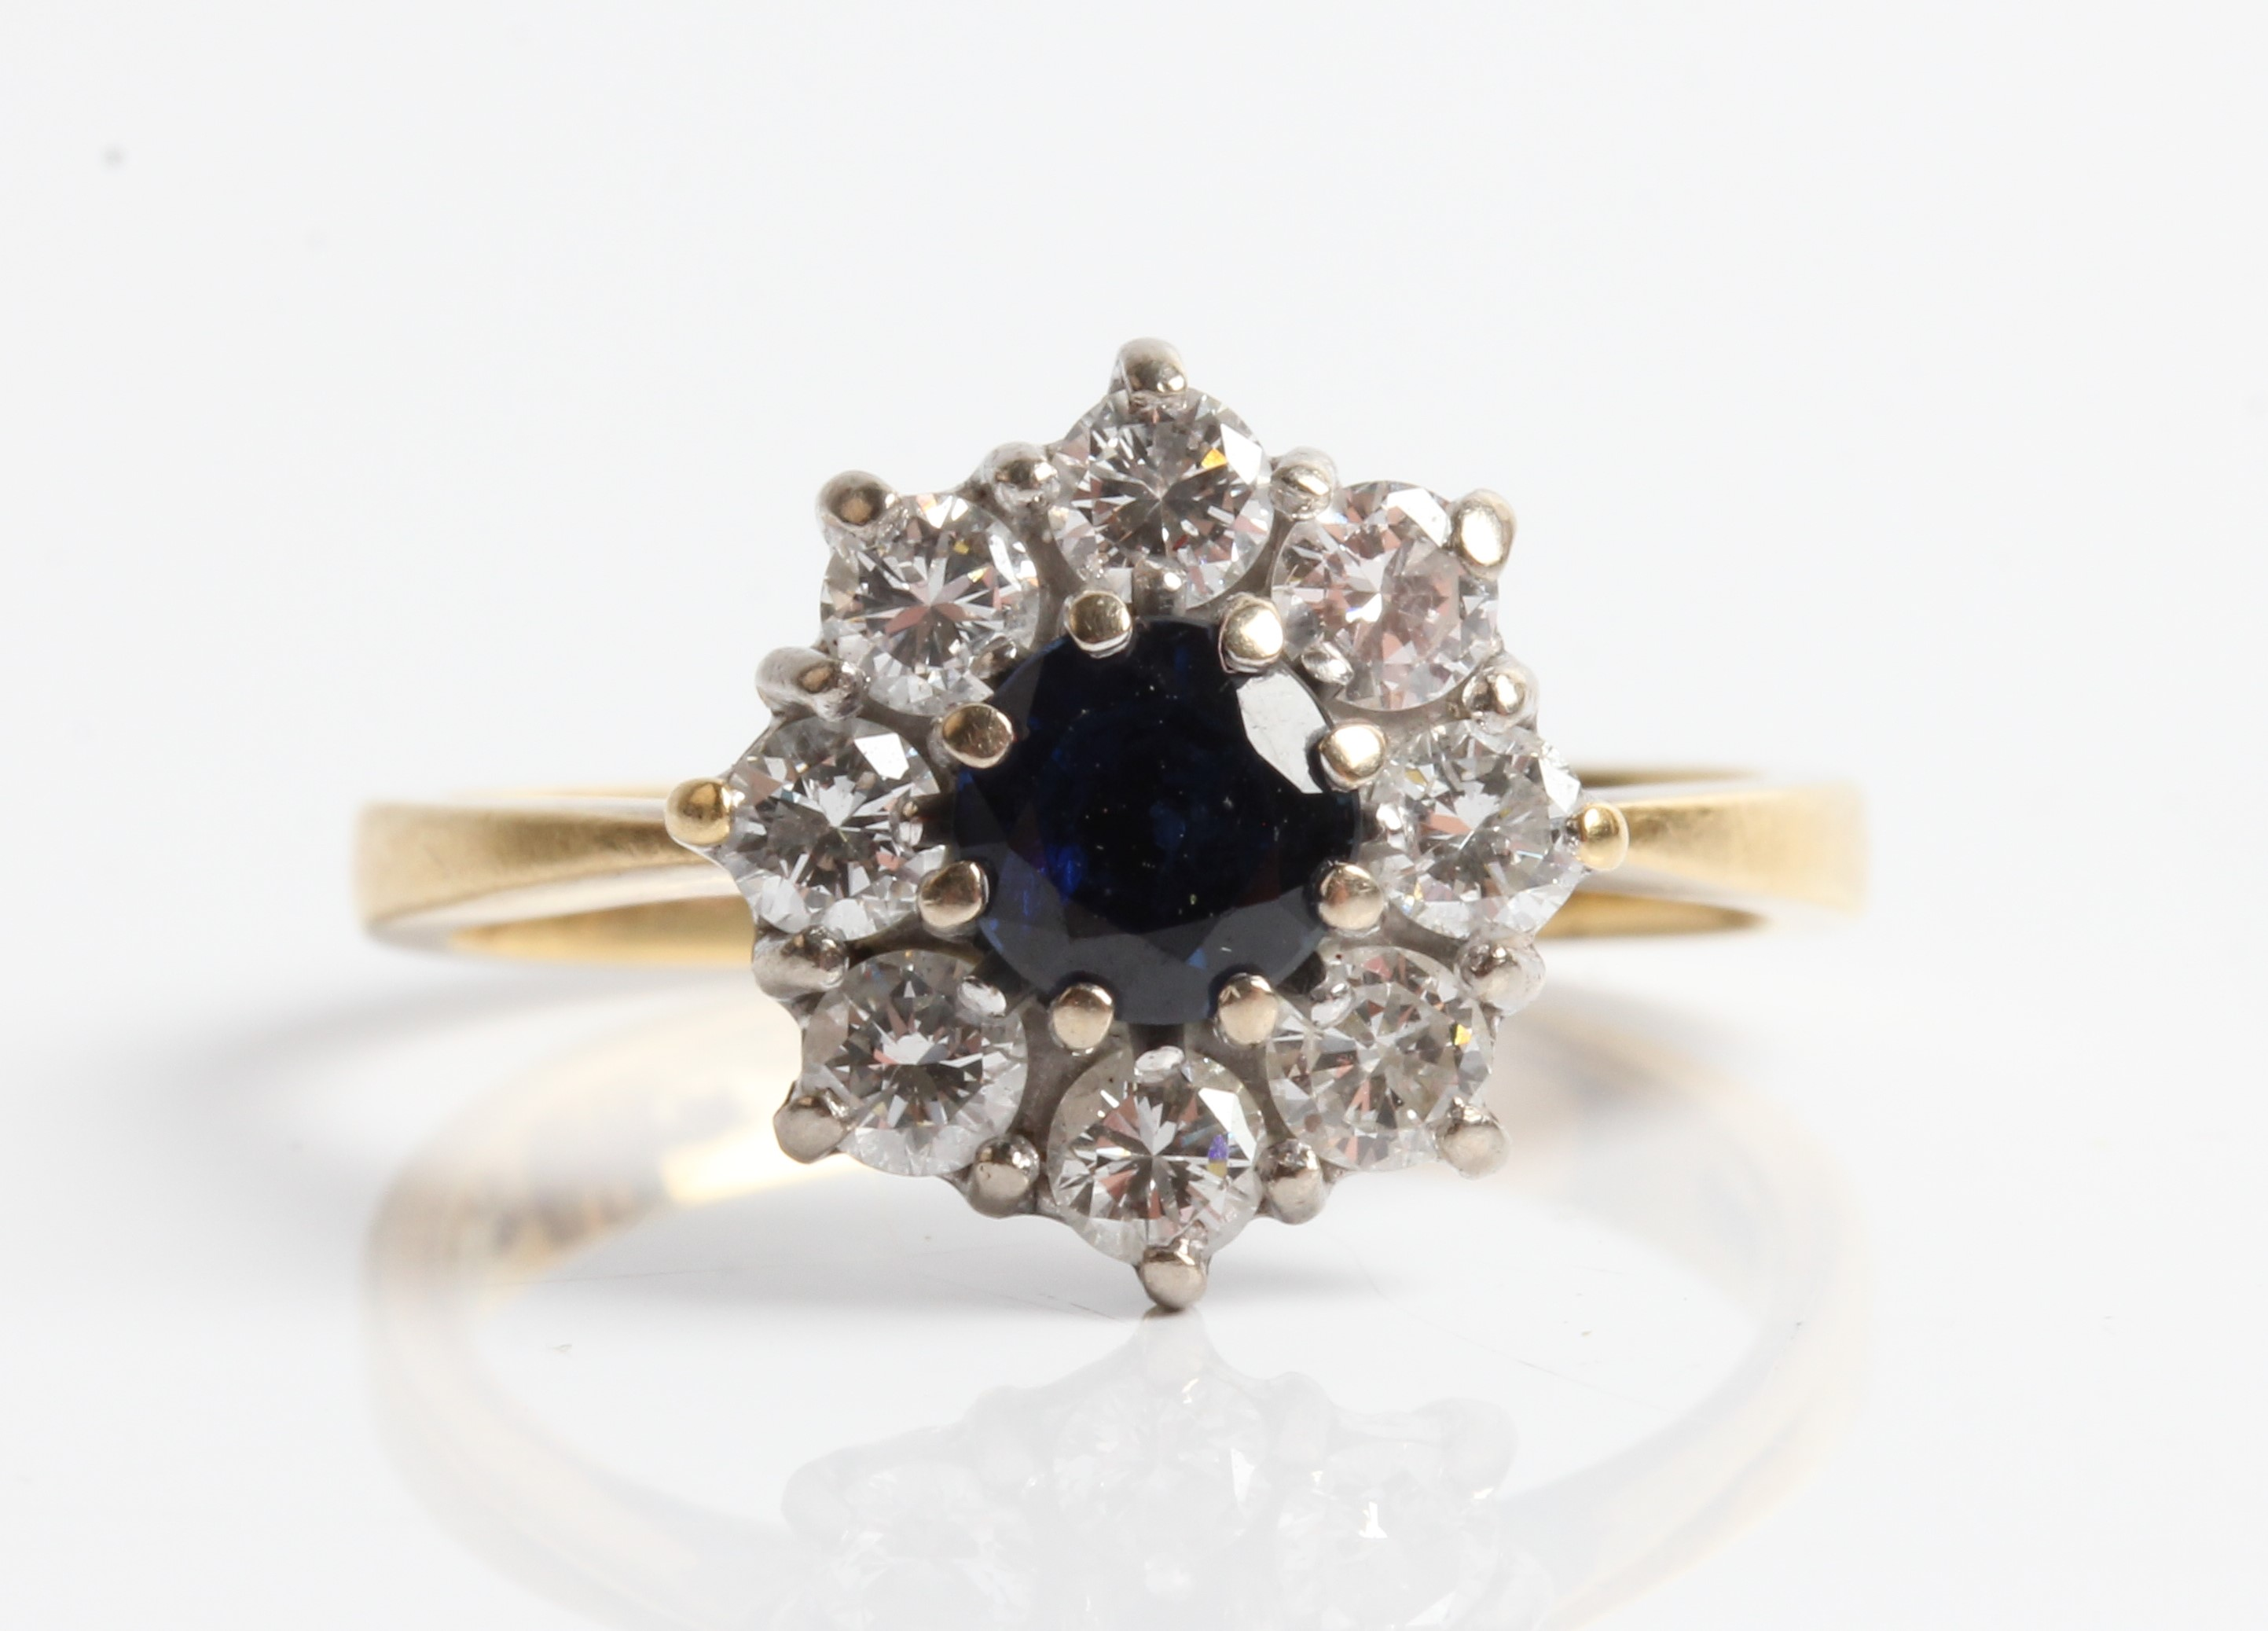 A hallmarked 18ct yellow gold (rubbed) sapphire and diamond cluster ring, set with a central round